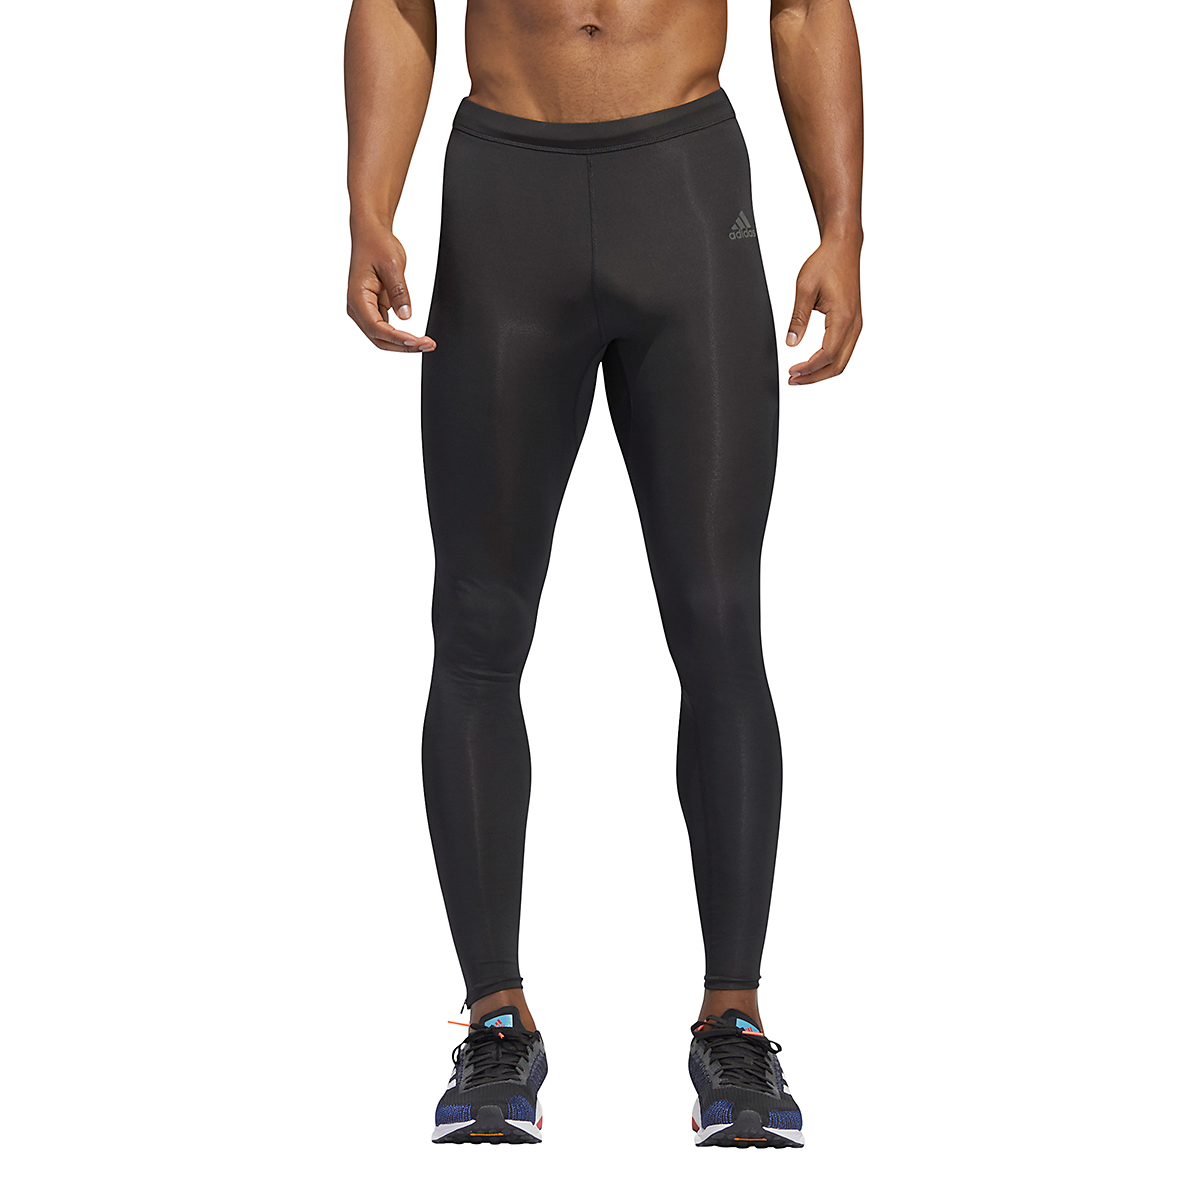 Men's Adidas Own The Run Long Tights - Color: Black - Size: XS, Black, large, image 1